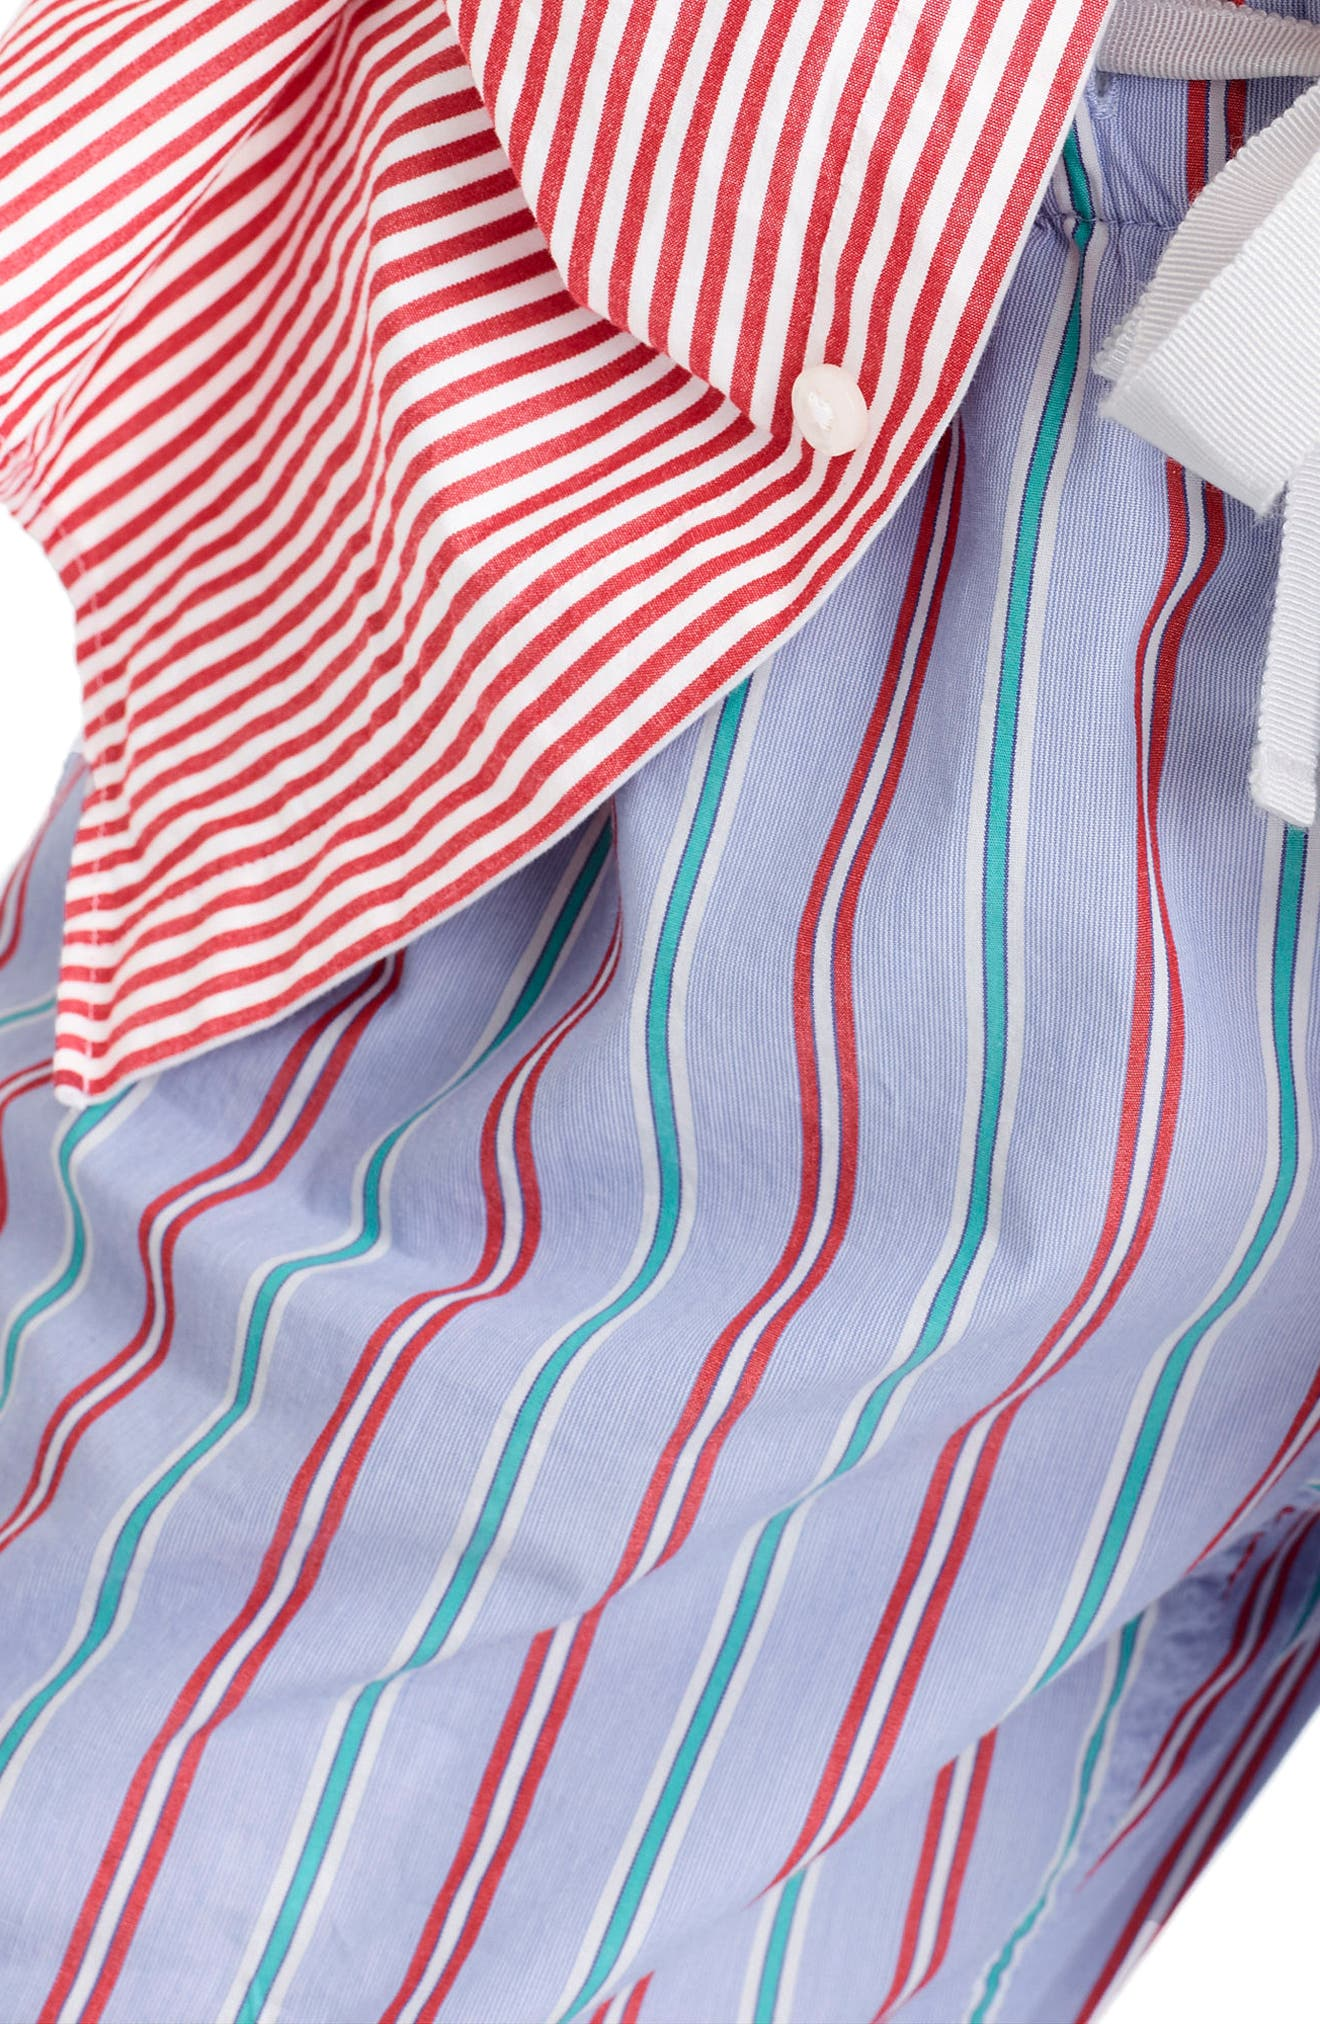 Candy Cane Pajama Pants,                             Alternate thumbnail 3, color,                             Holiday Stripe